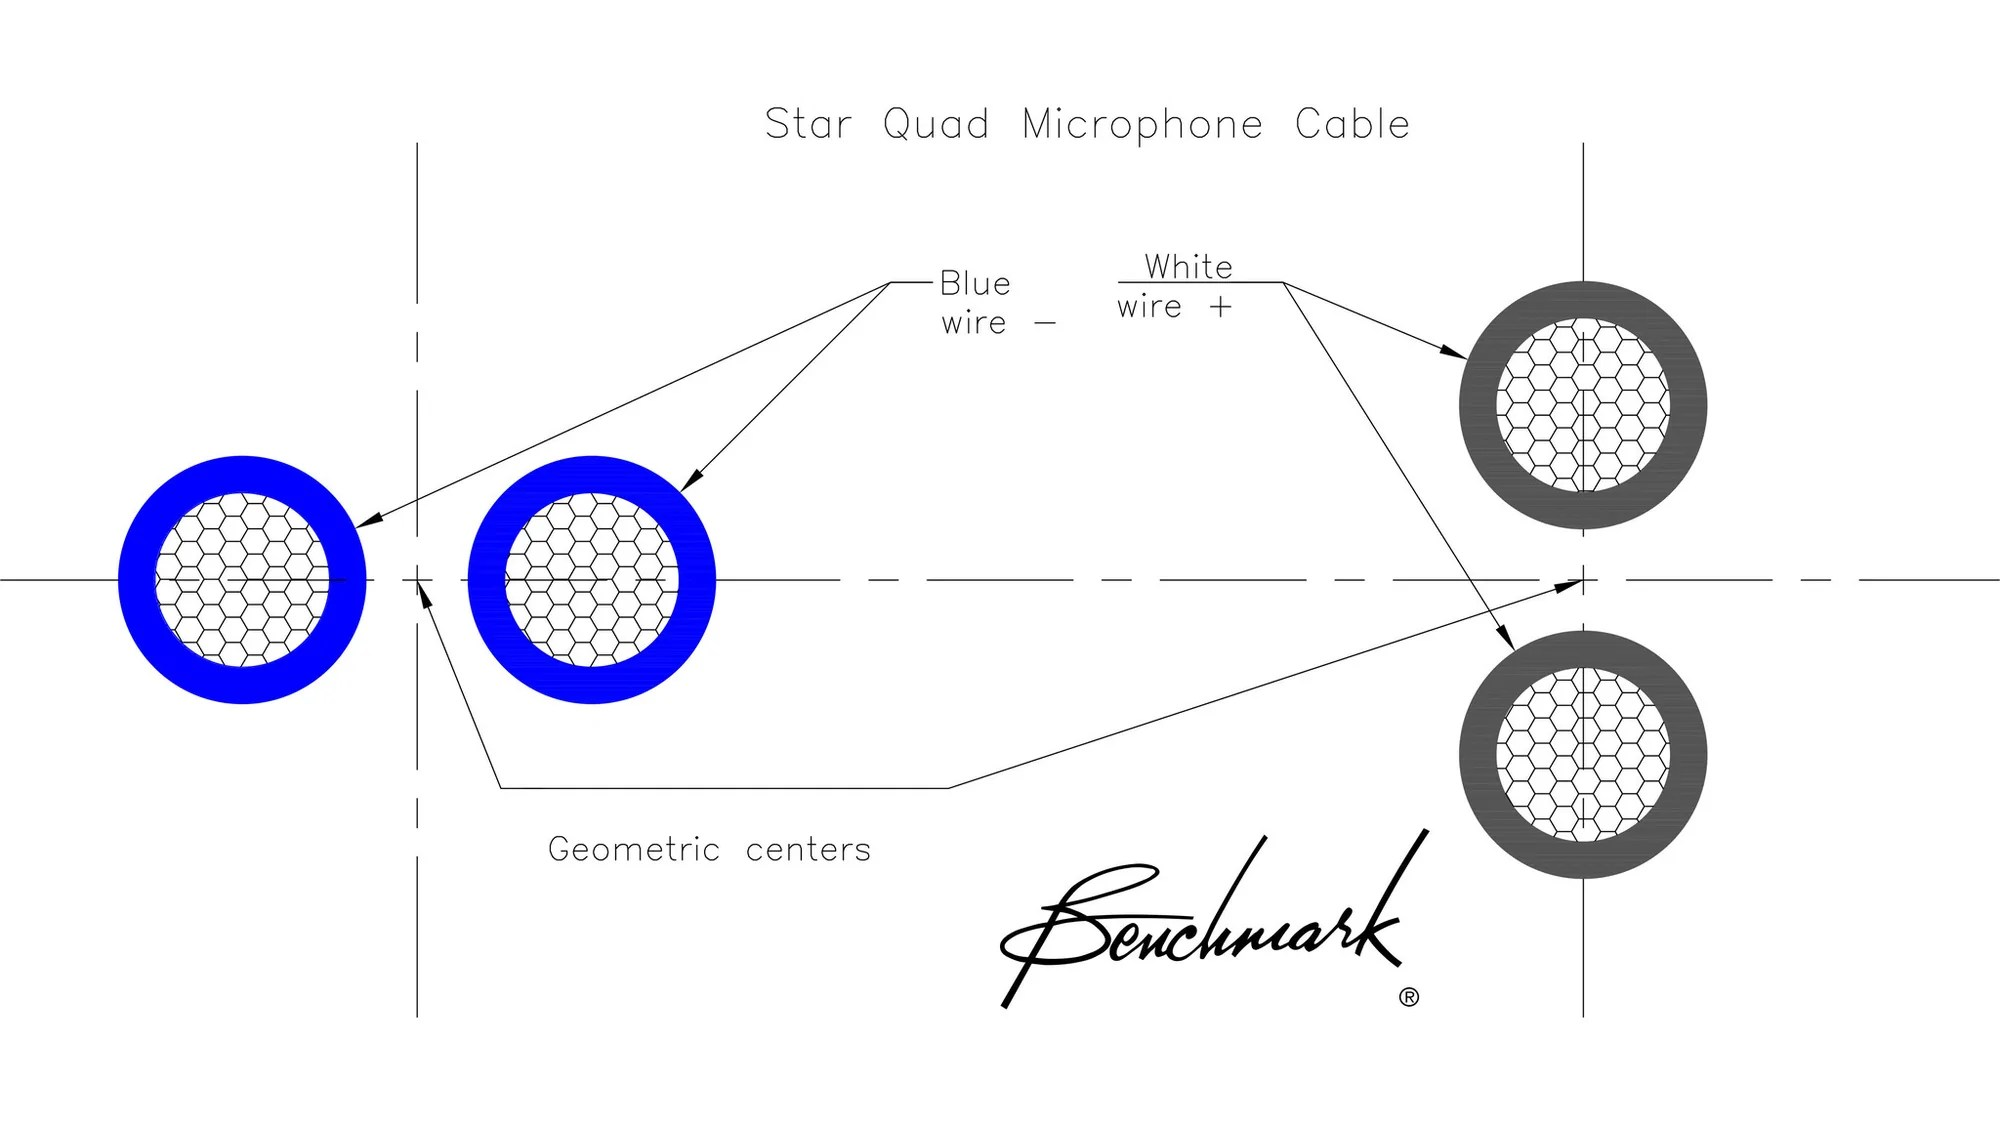 small resolution of benchmark studio stage starquad xlr cable for analog audio balanced star quad wiring diagrams